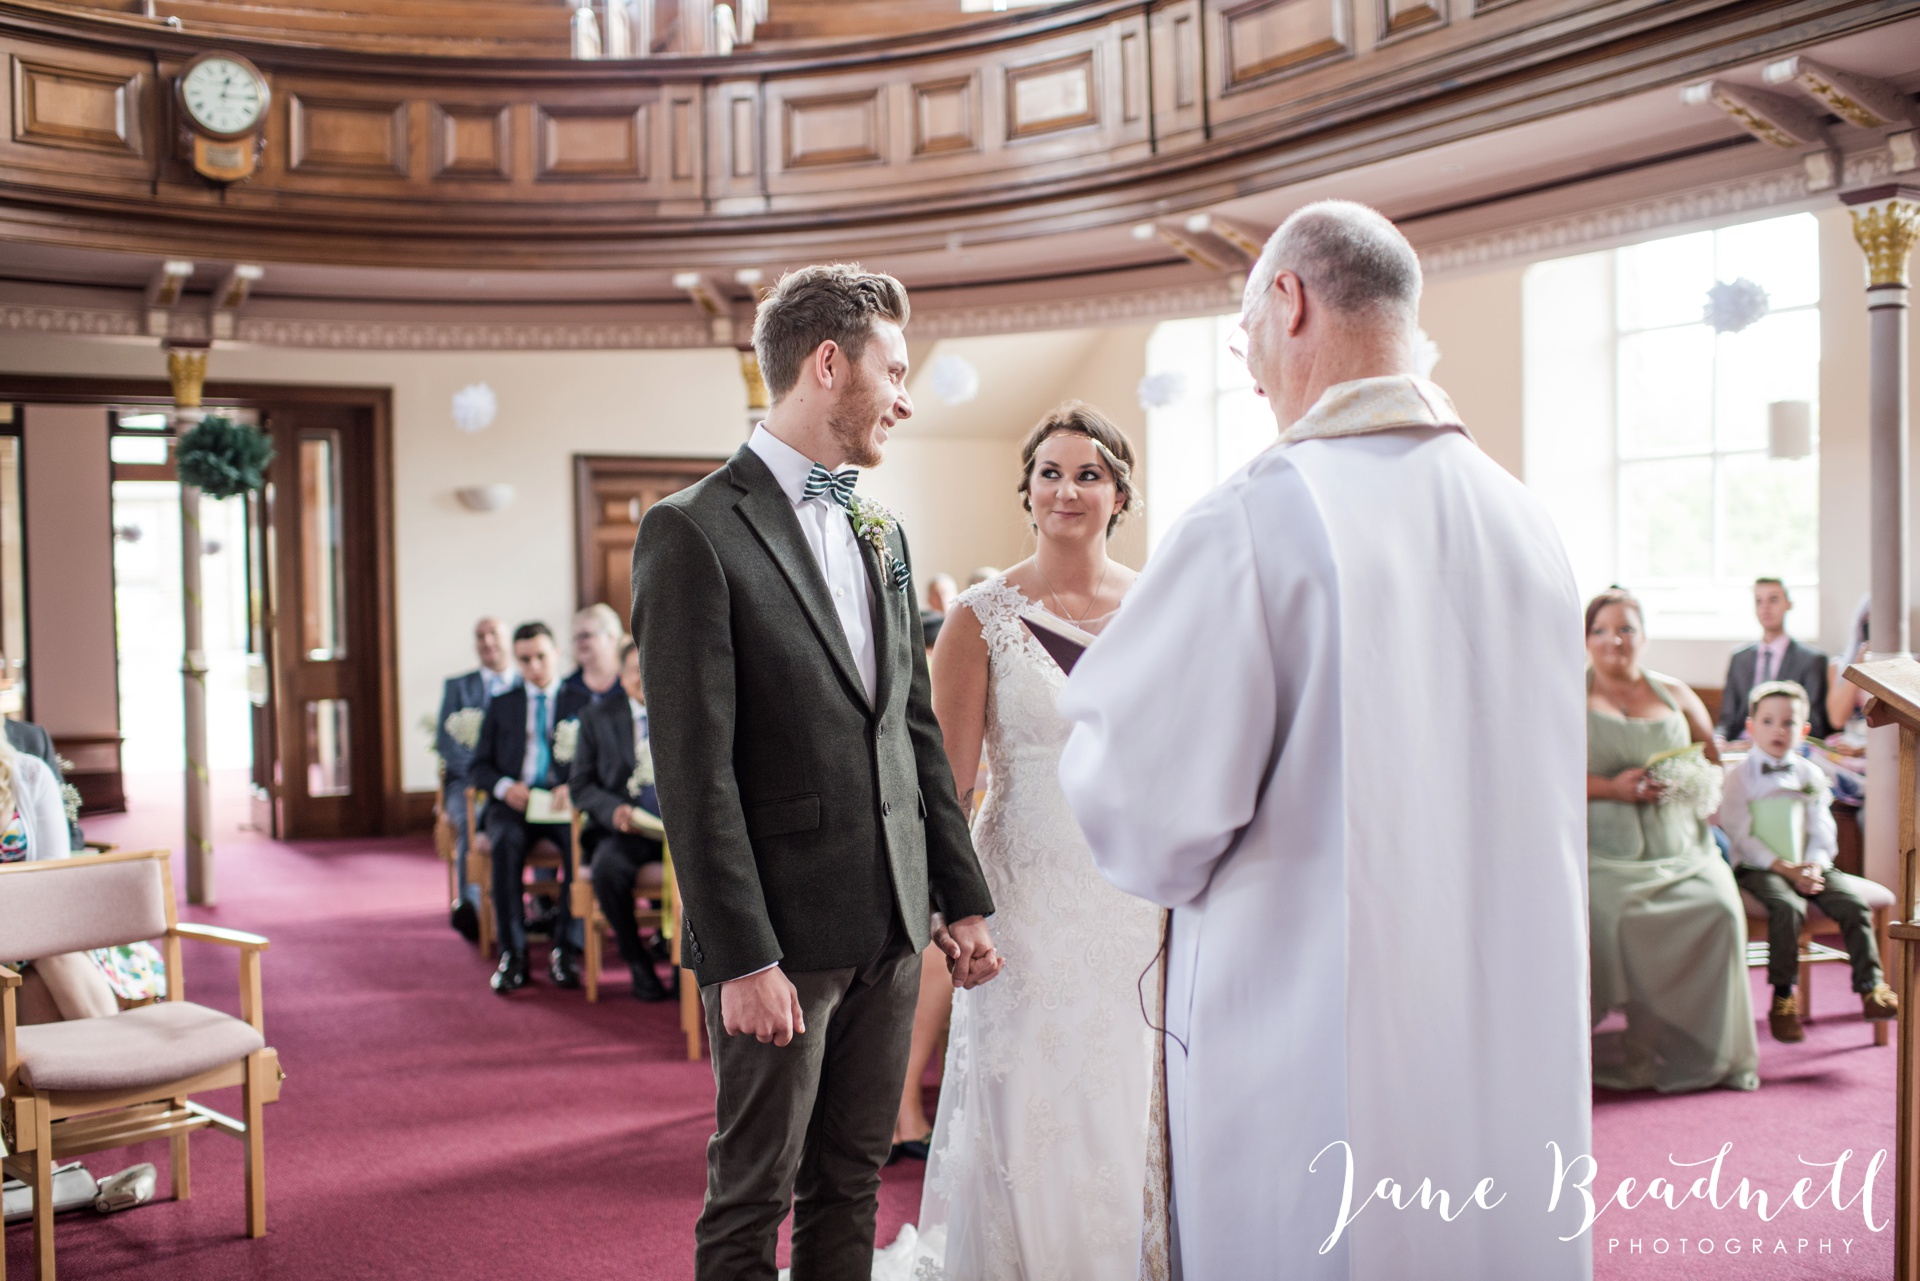 Jane Beadnell fine art wedding photographer The Old Deanery Ripon_0031